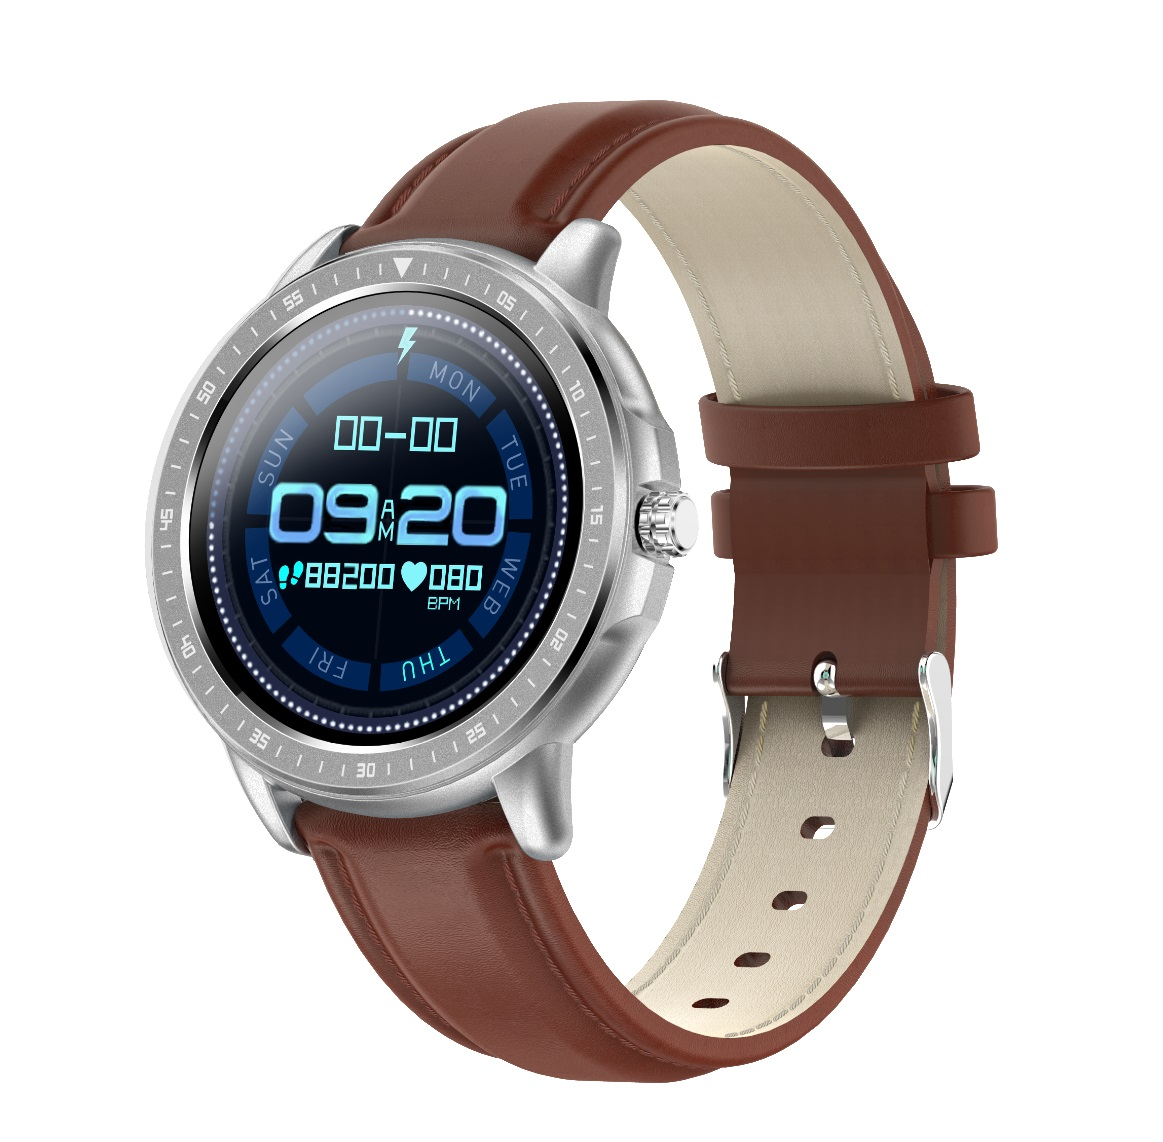 CF19 Smart Bracelet Round Dial 240*240 Touch Screen Heart Rate Monitor Step Counts IP67 Waterproof Wristwatch Silver